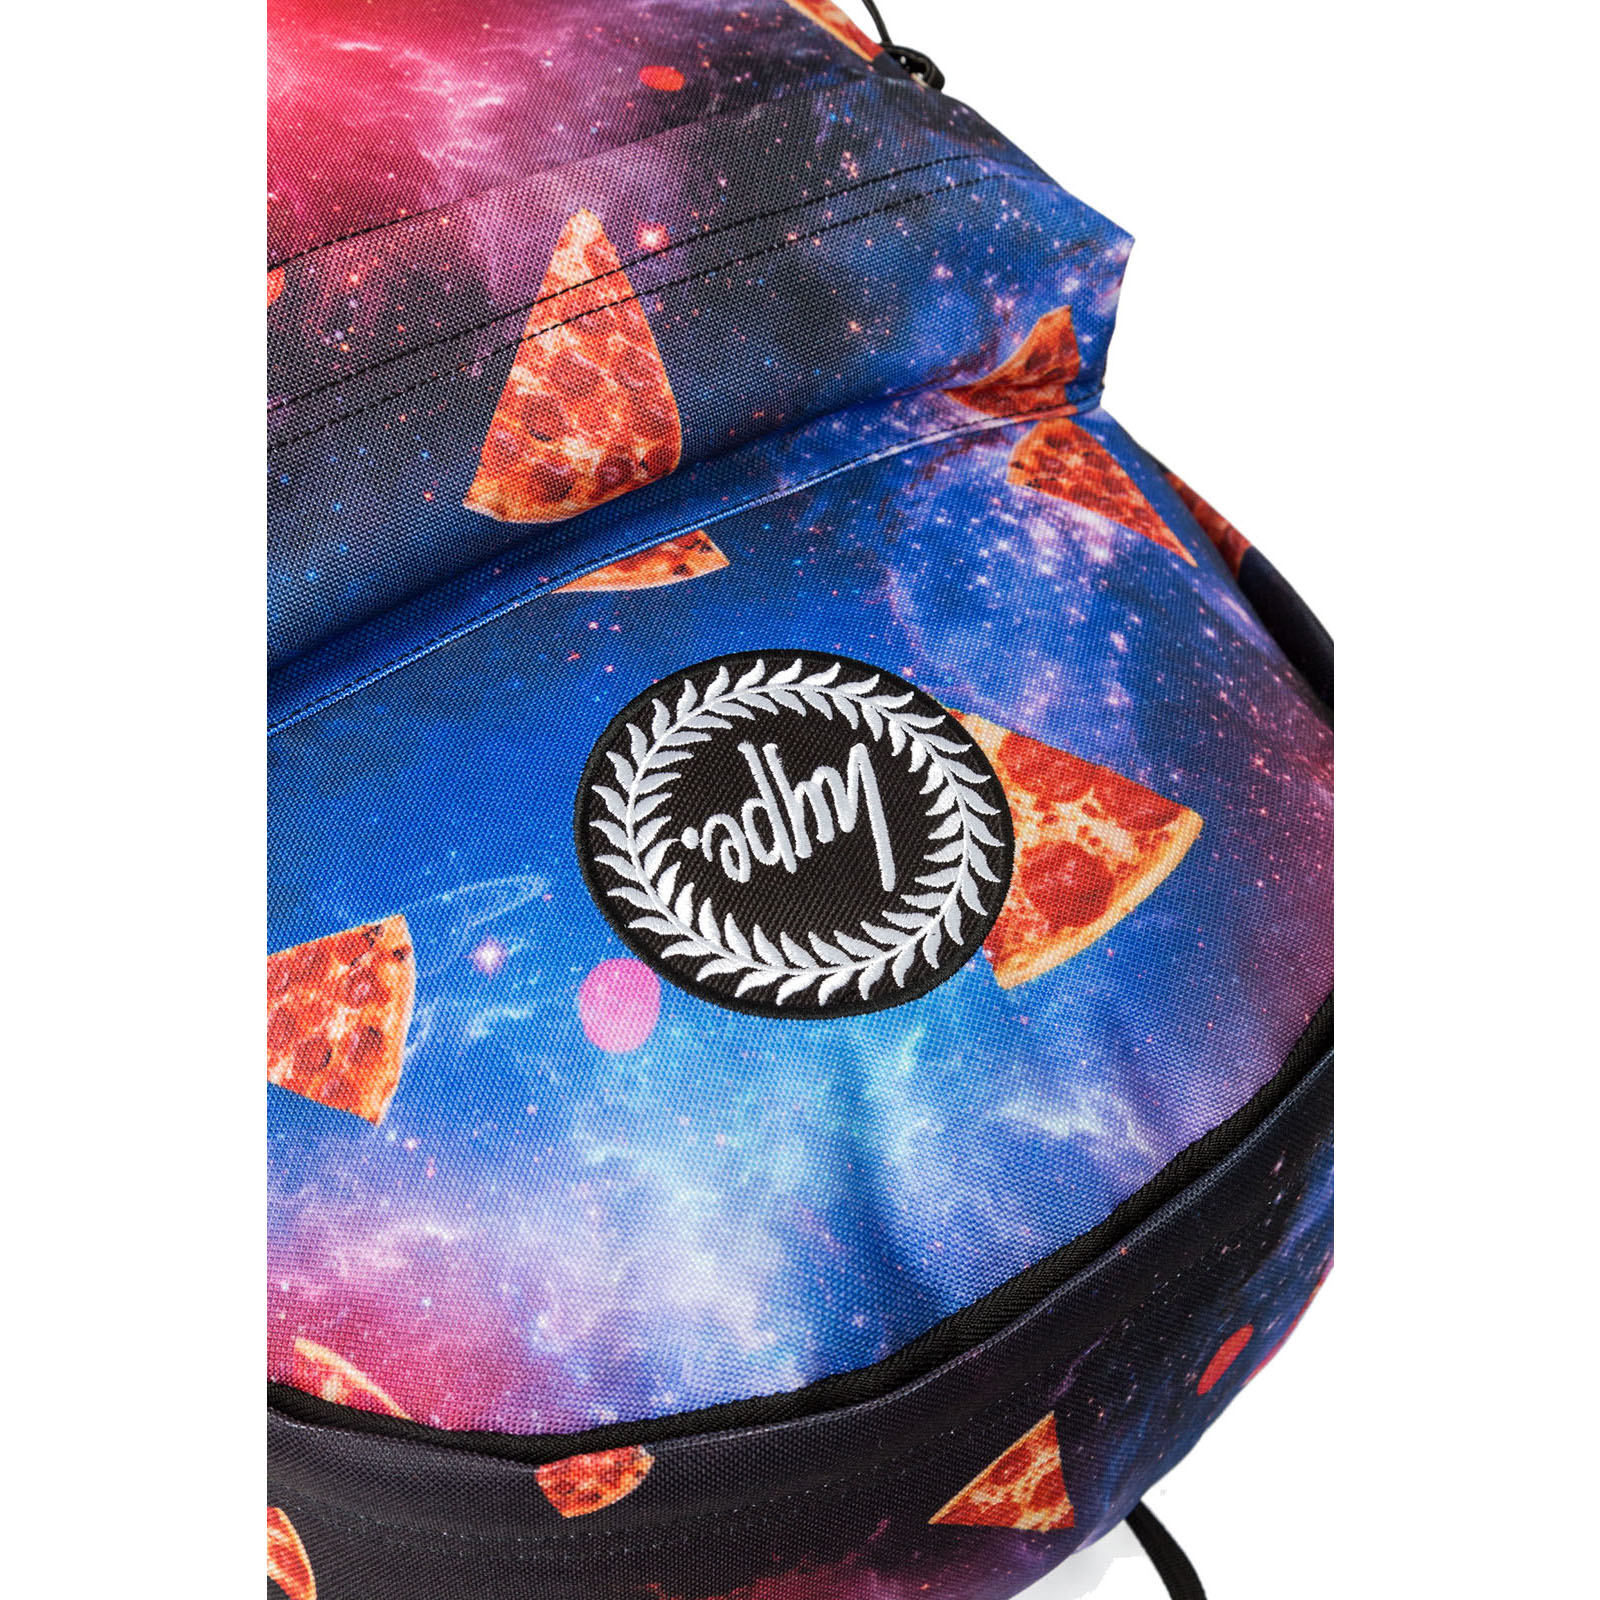 bd35b97a6e9 Sentinel Hype Space Pizza Pizza Logo Backpack   Rucksack Bag - Space Pizza  Multi